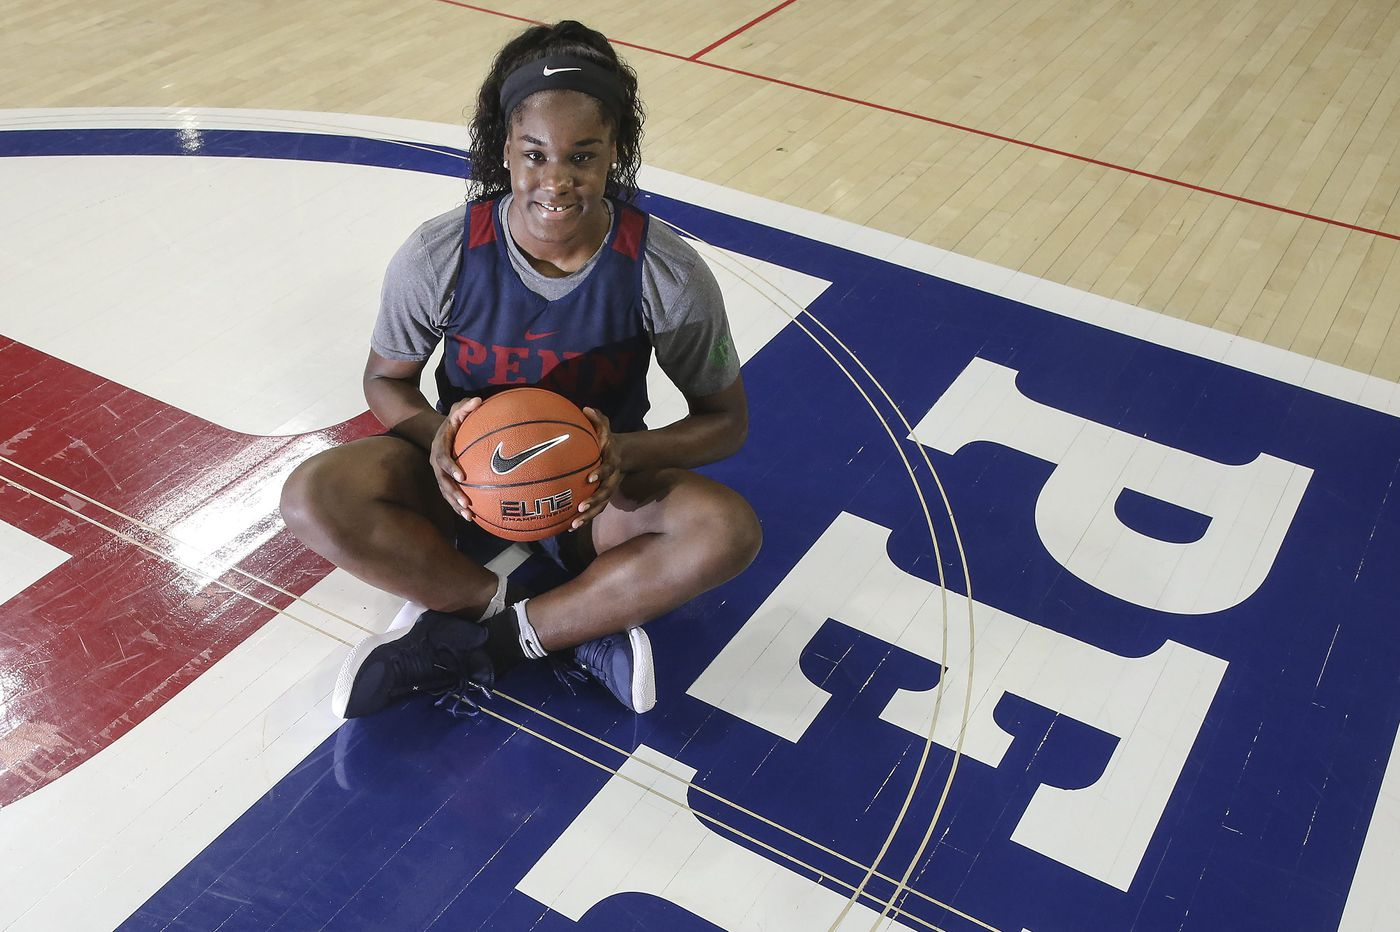 Eleah Parker, fresh off rookie-of-the-year season, is looking to lead Penn women's basketball this year | Season preview